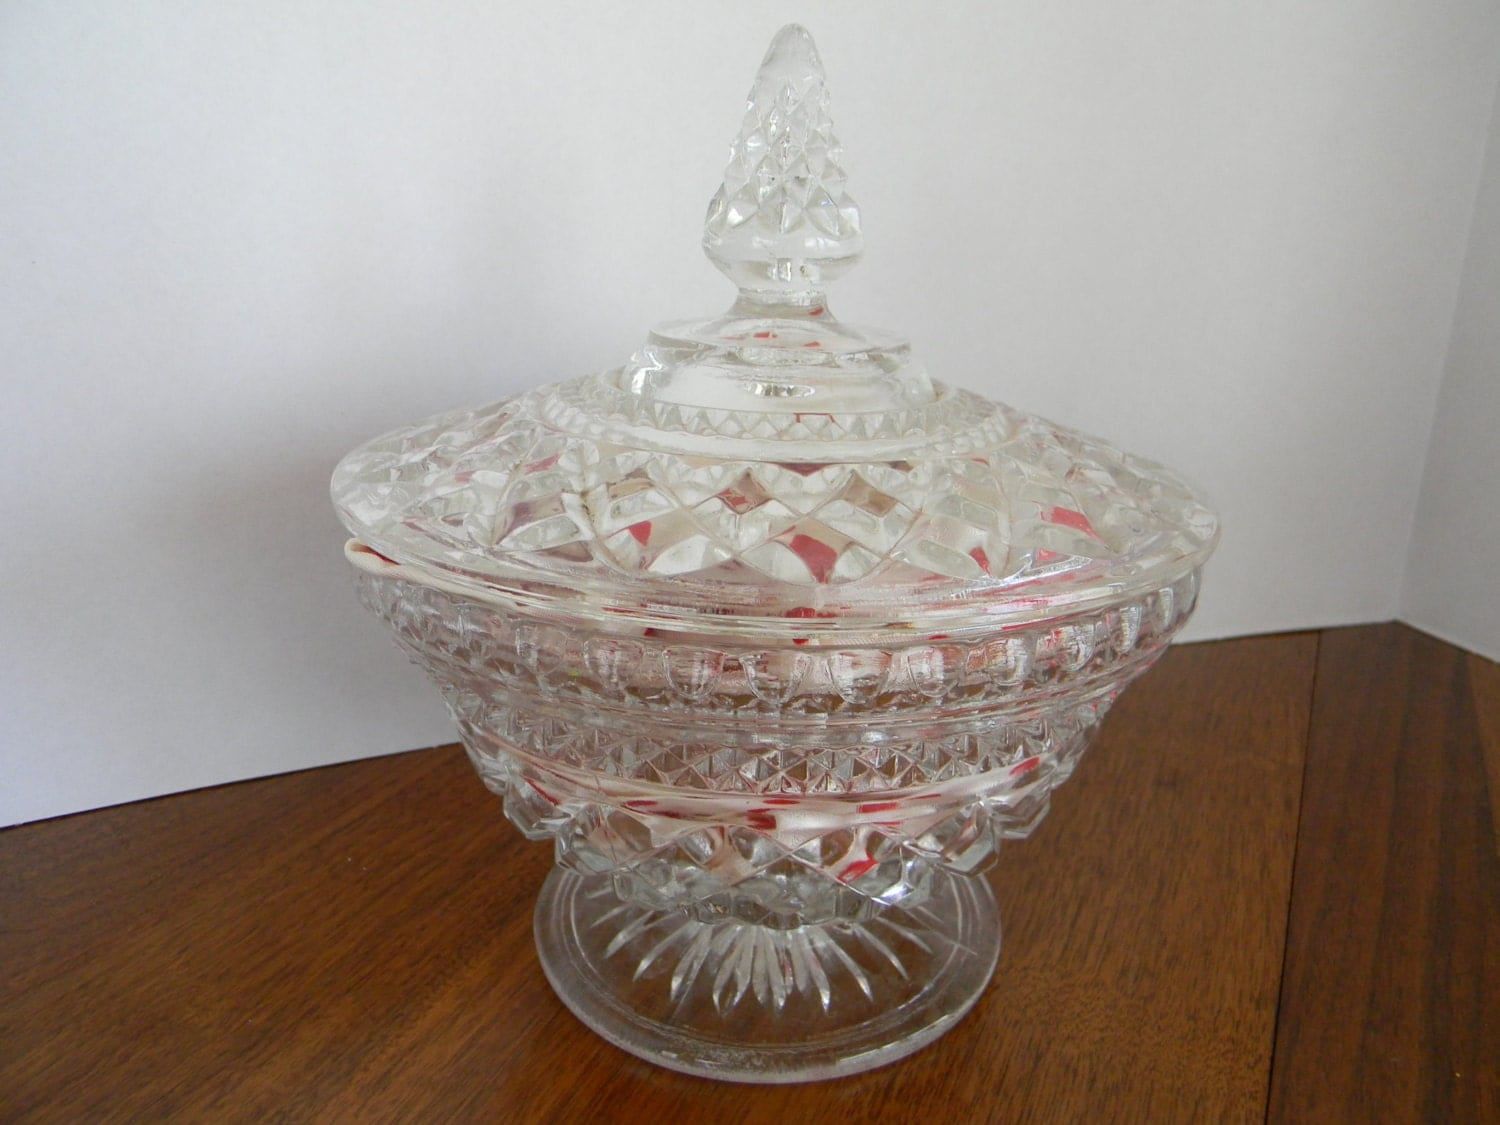 Clearance sale candy dish holiday decor by pickerchicks on for Christmas decorations clearance